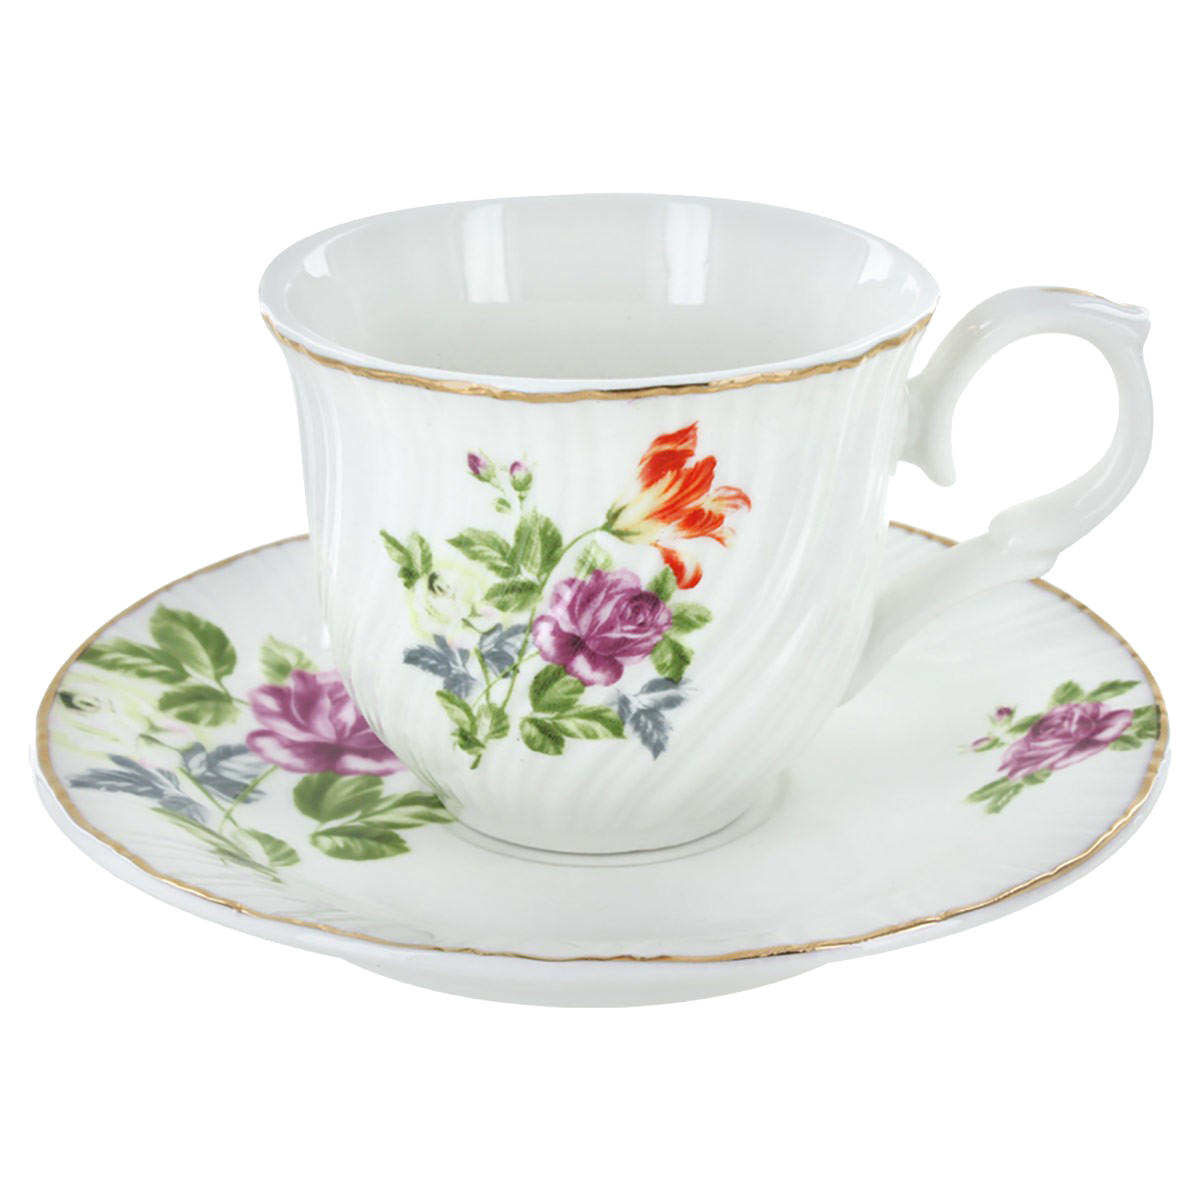 Tea Cup Transparent Background PNG Image